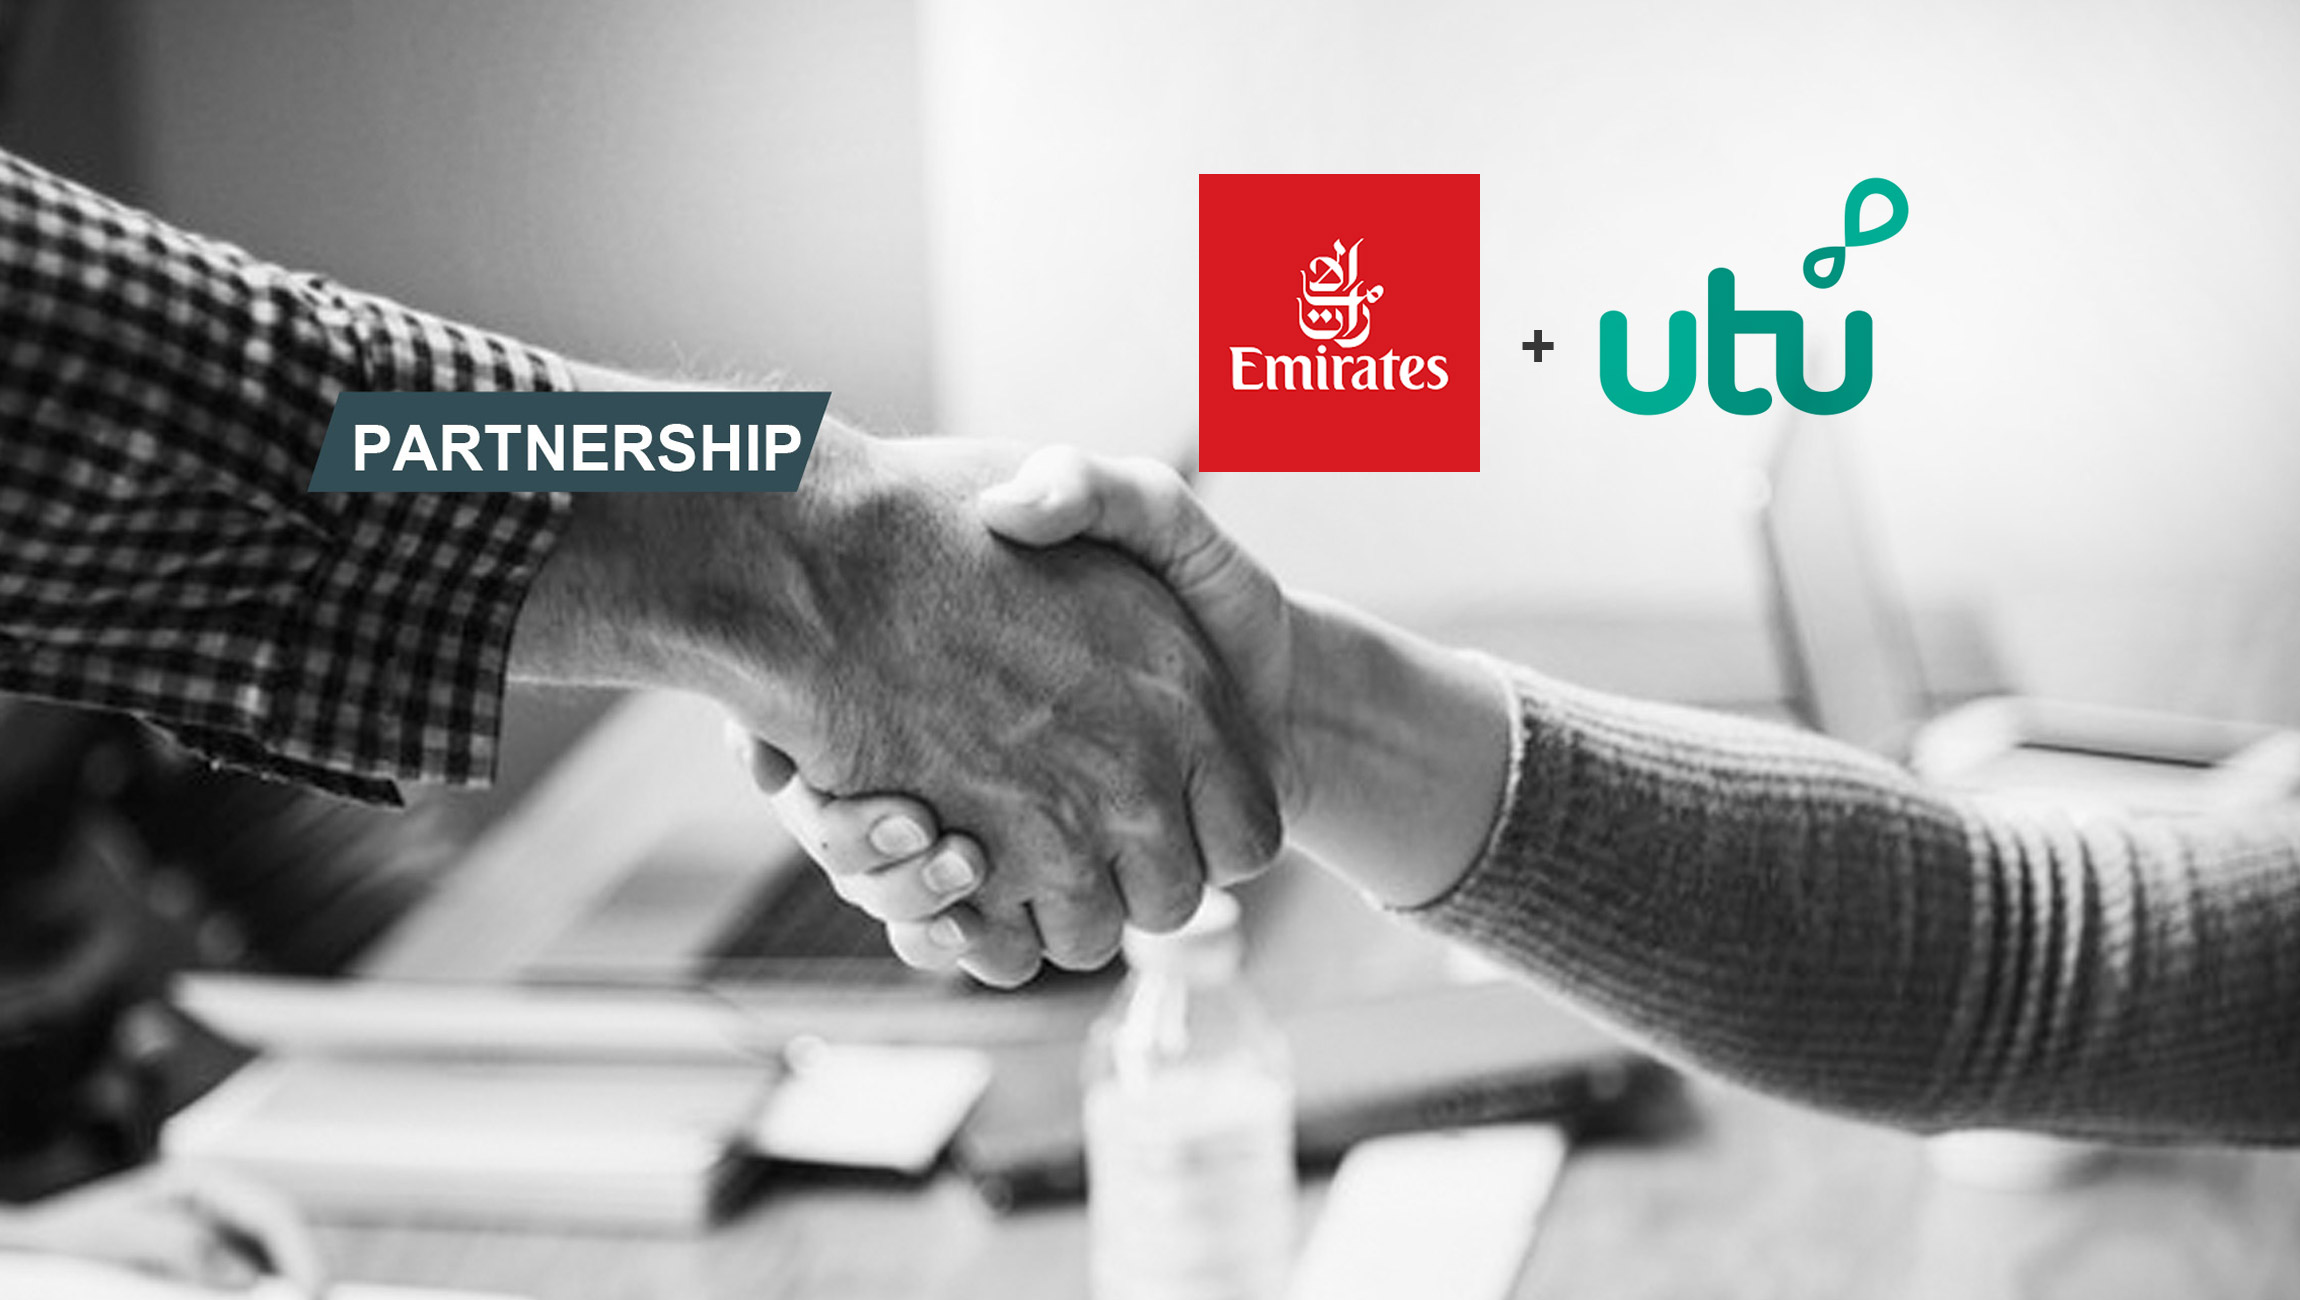 Emirates and utu Sign Strategic Partnership in Drive to Revolutionize Tax-Free Shopping Experience